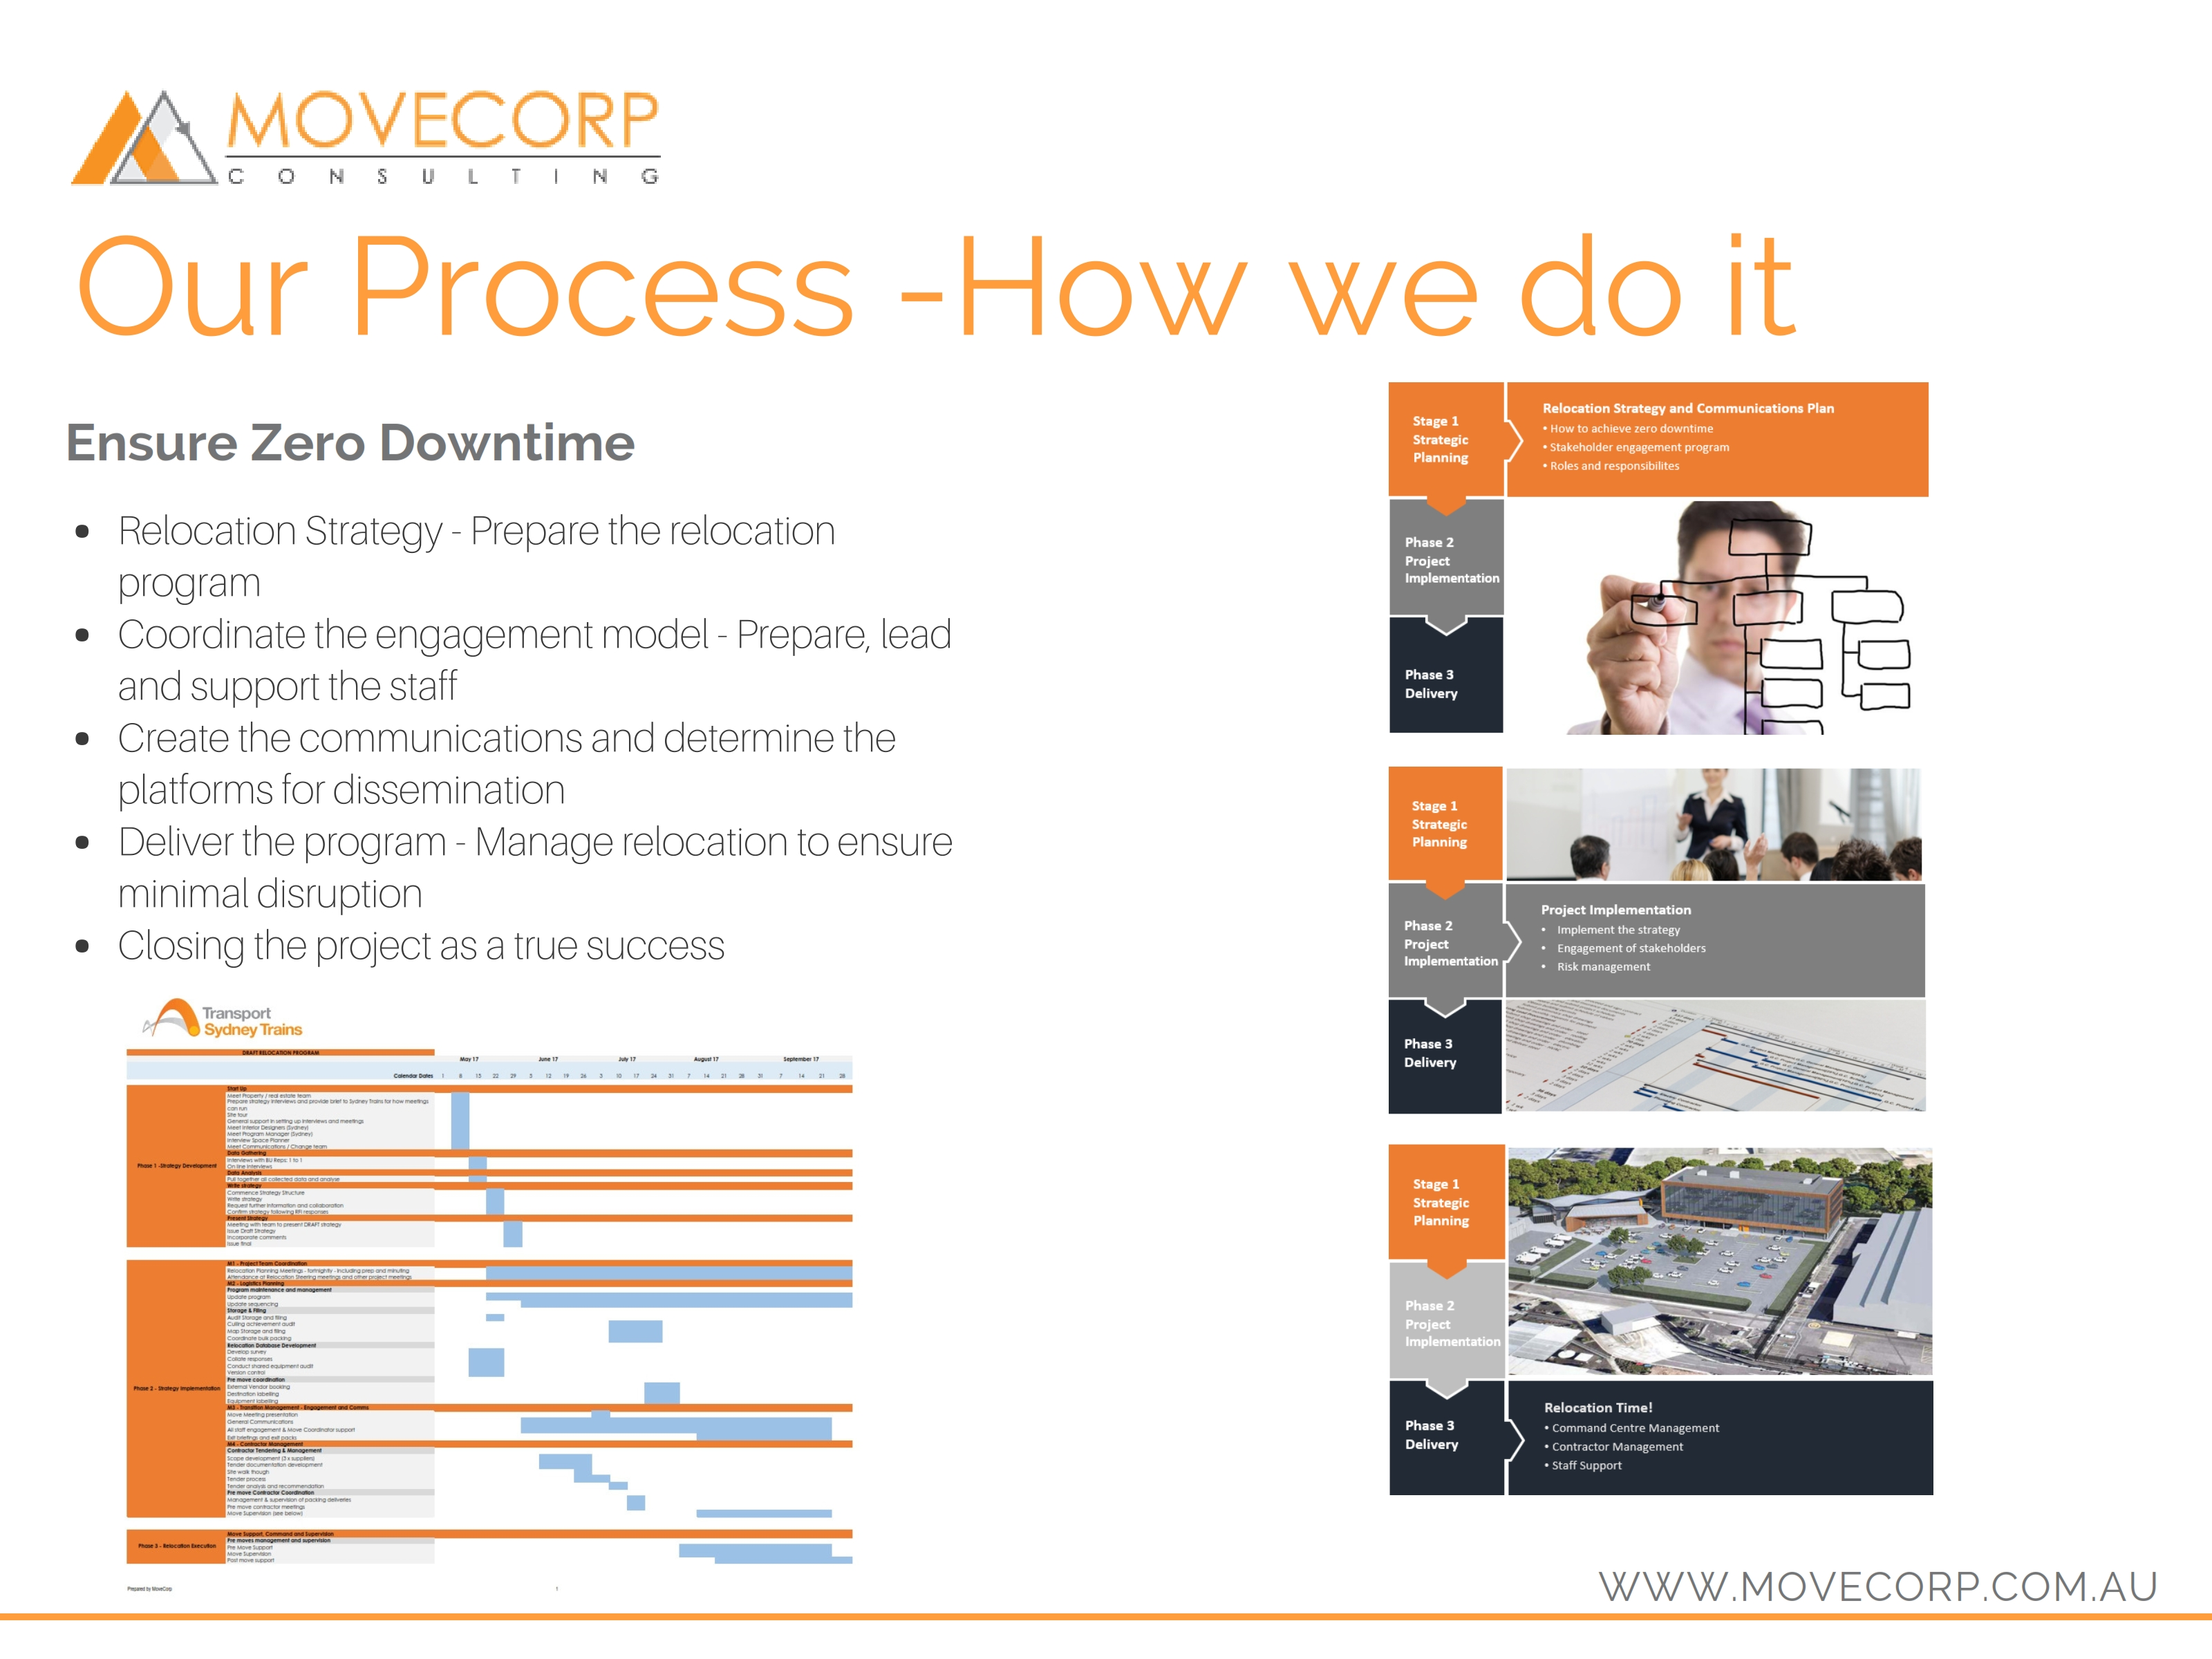 MoveCorp Relocation & Change Methodology (1)_007